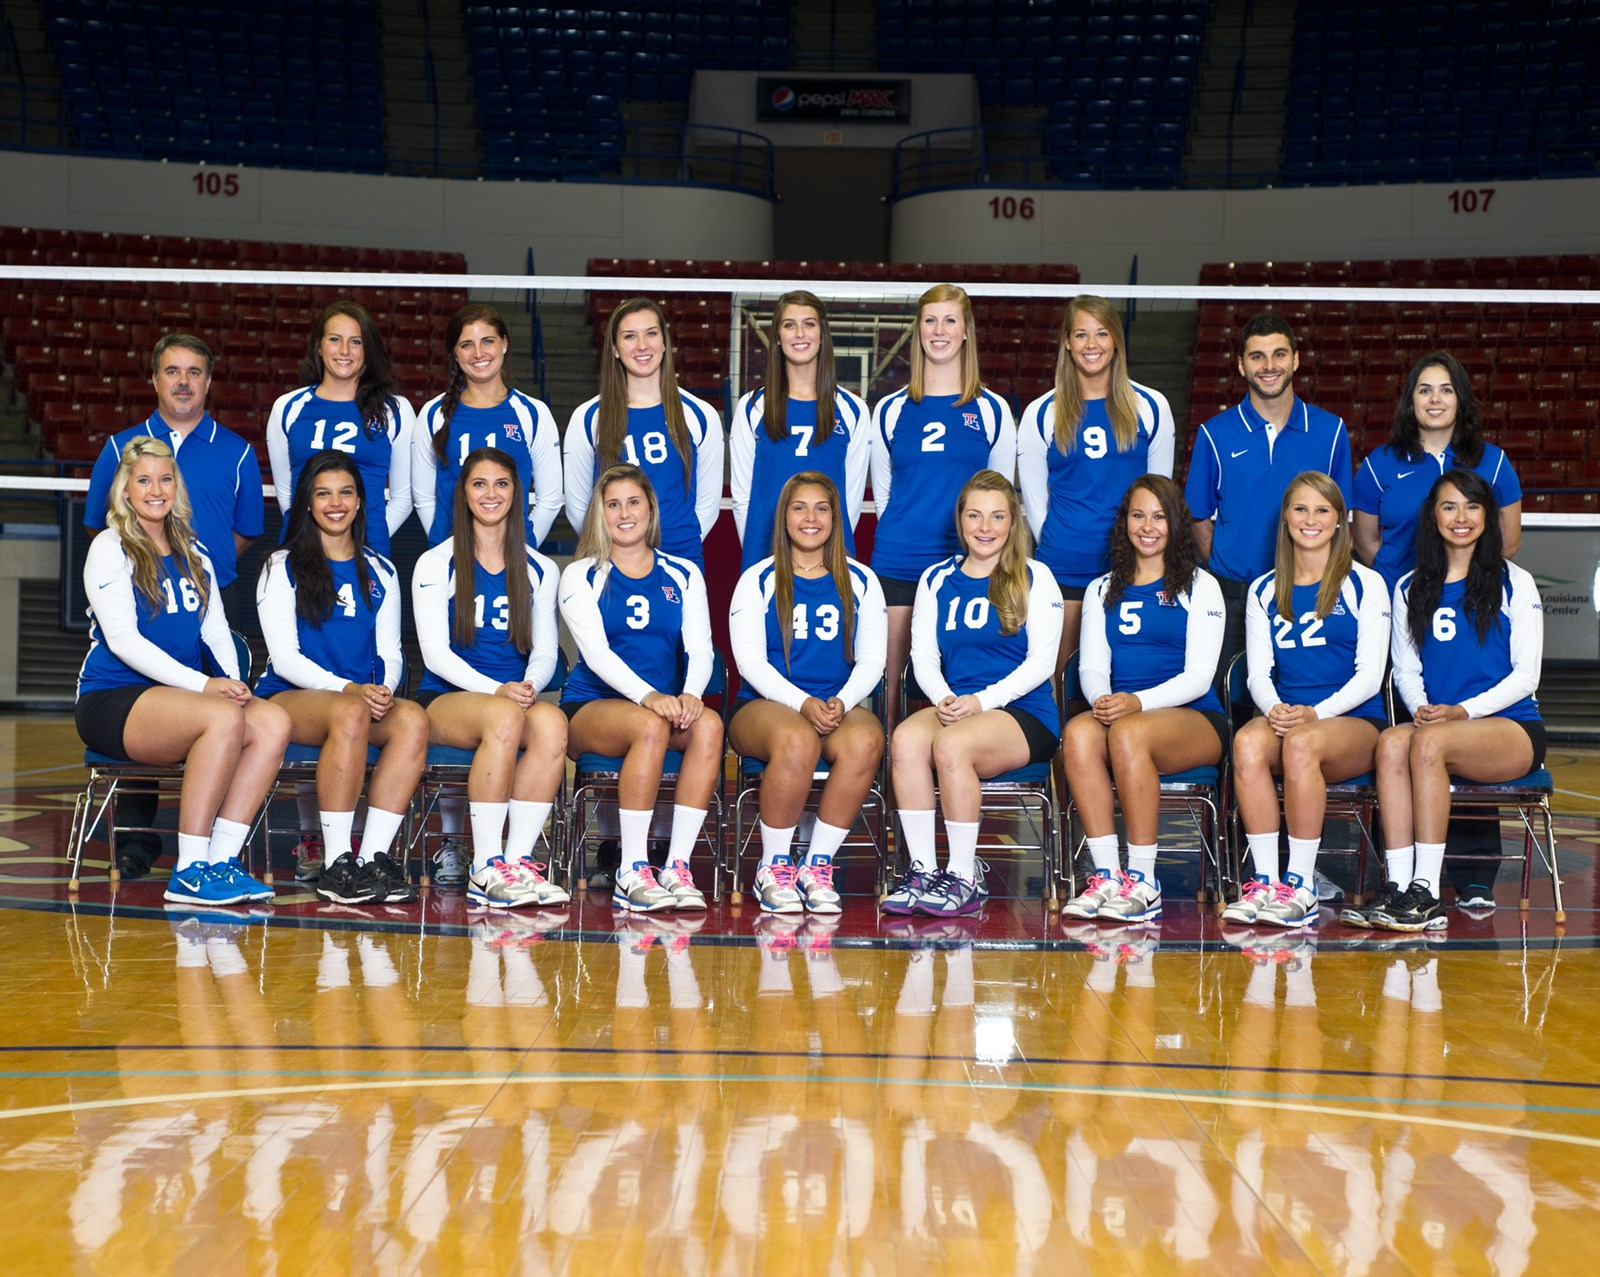 2012 Women S Volleyball Roster La Tech Athletics